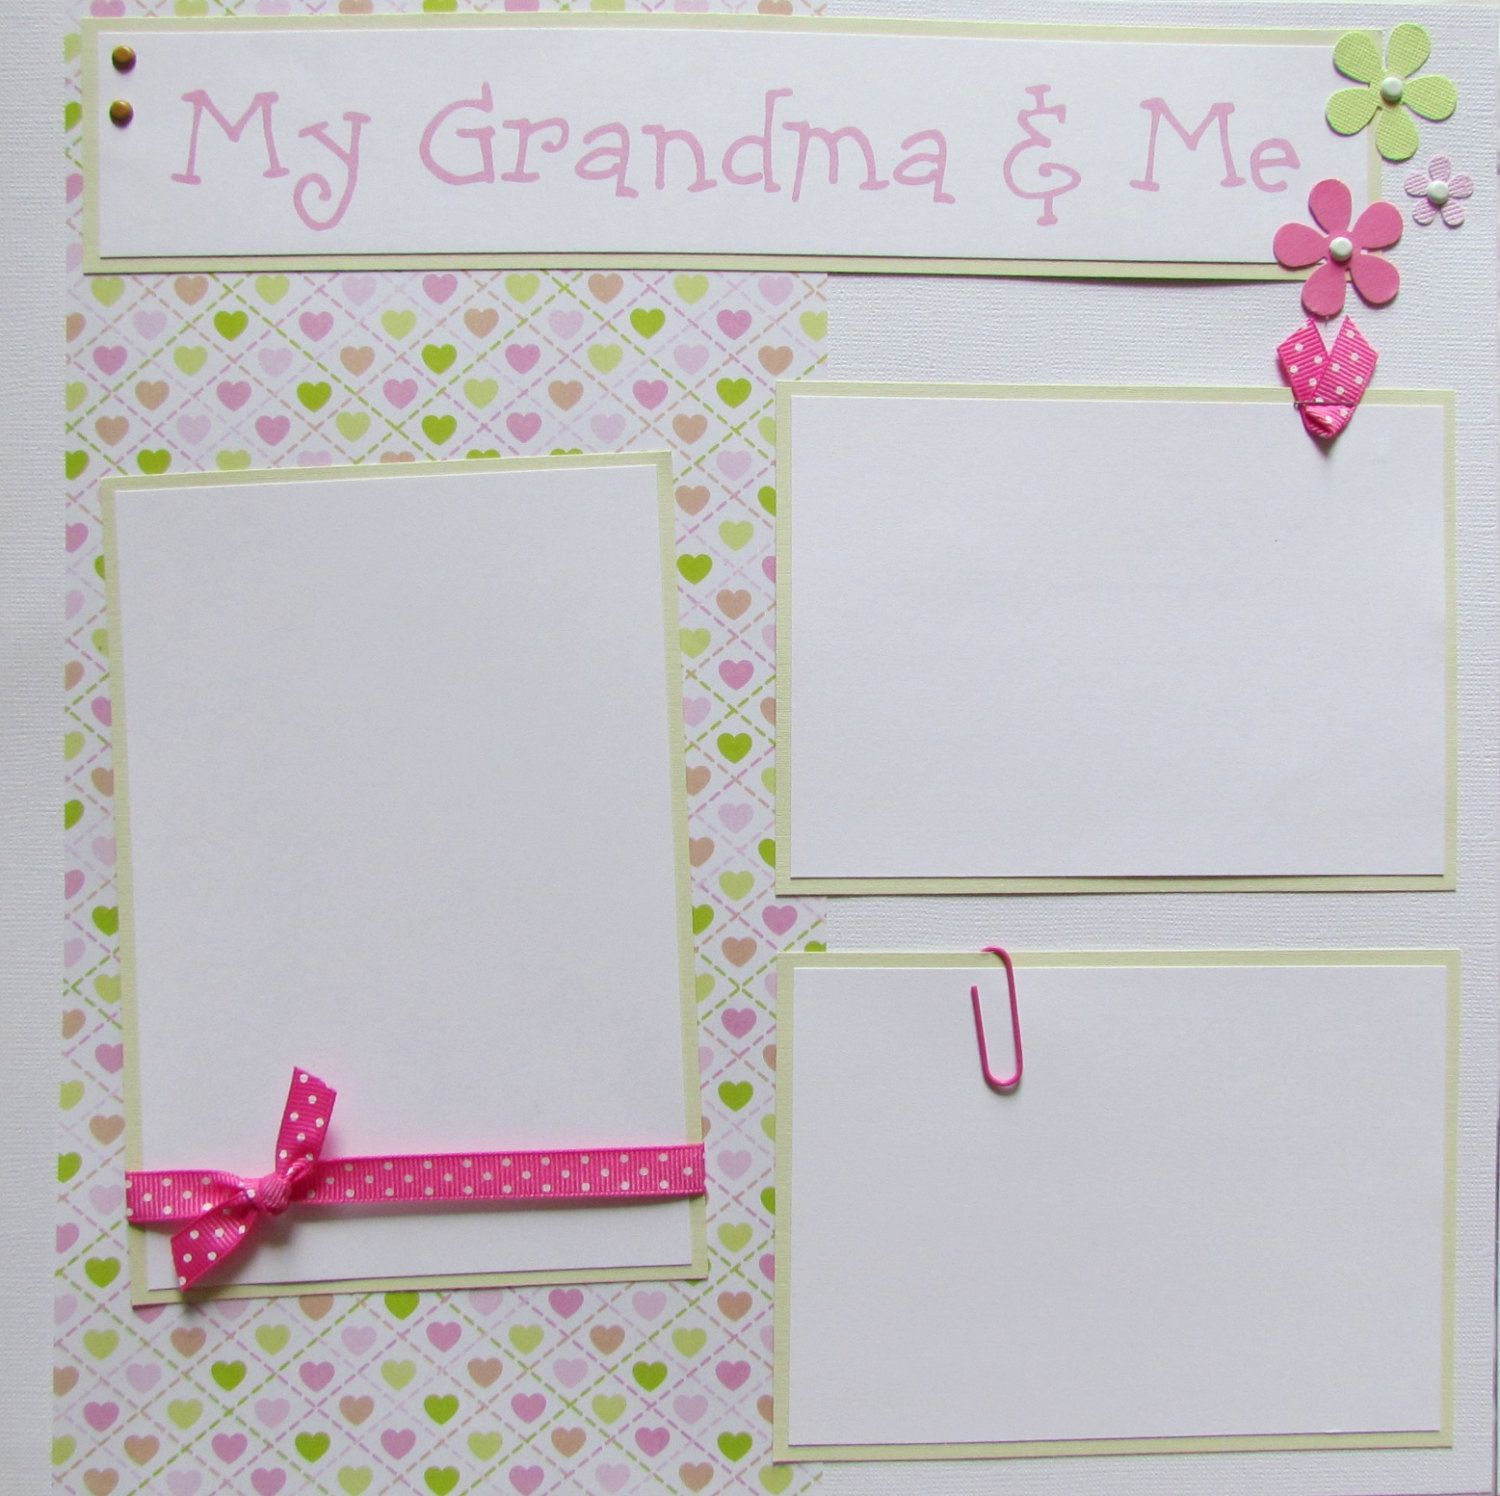 Premade Scrapbook 12x12 Pages Layout  MY GRANDMA &